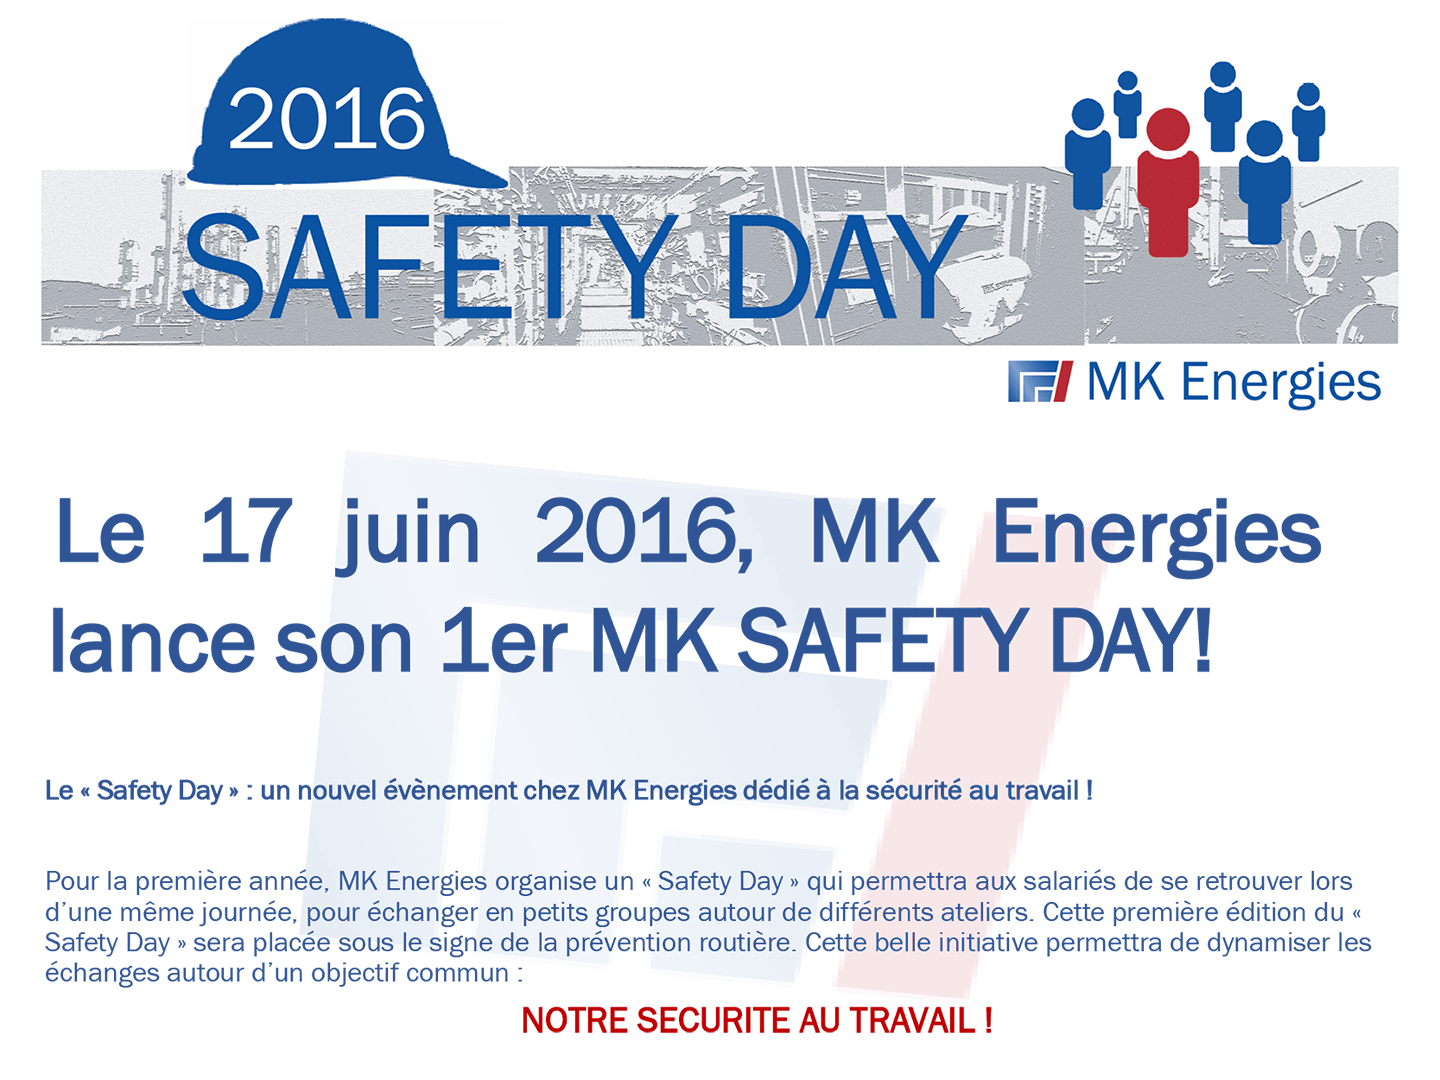 SafetyDay 2016 trailer